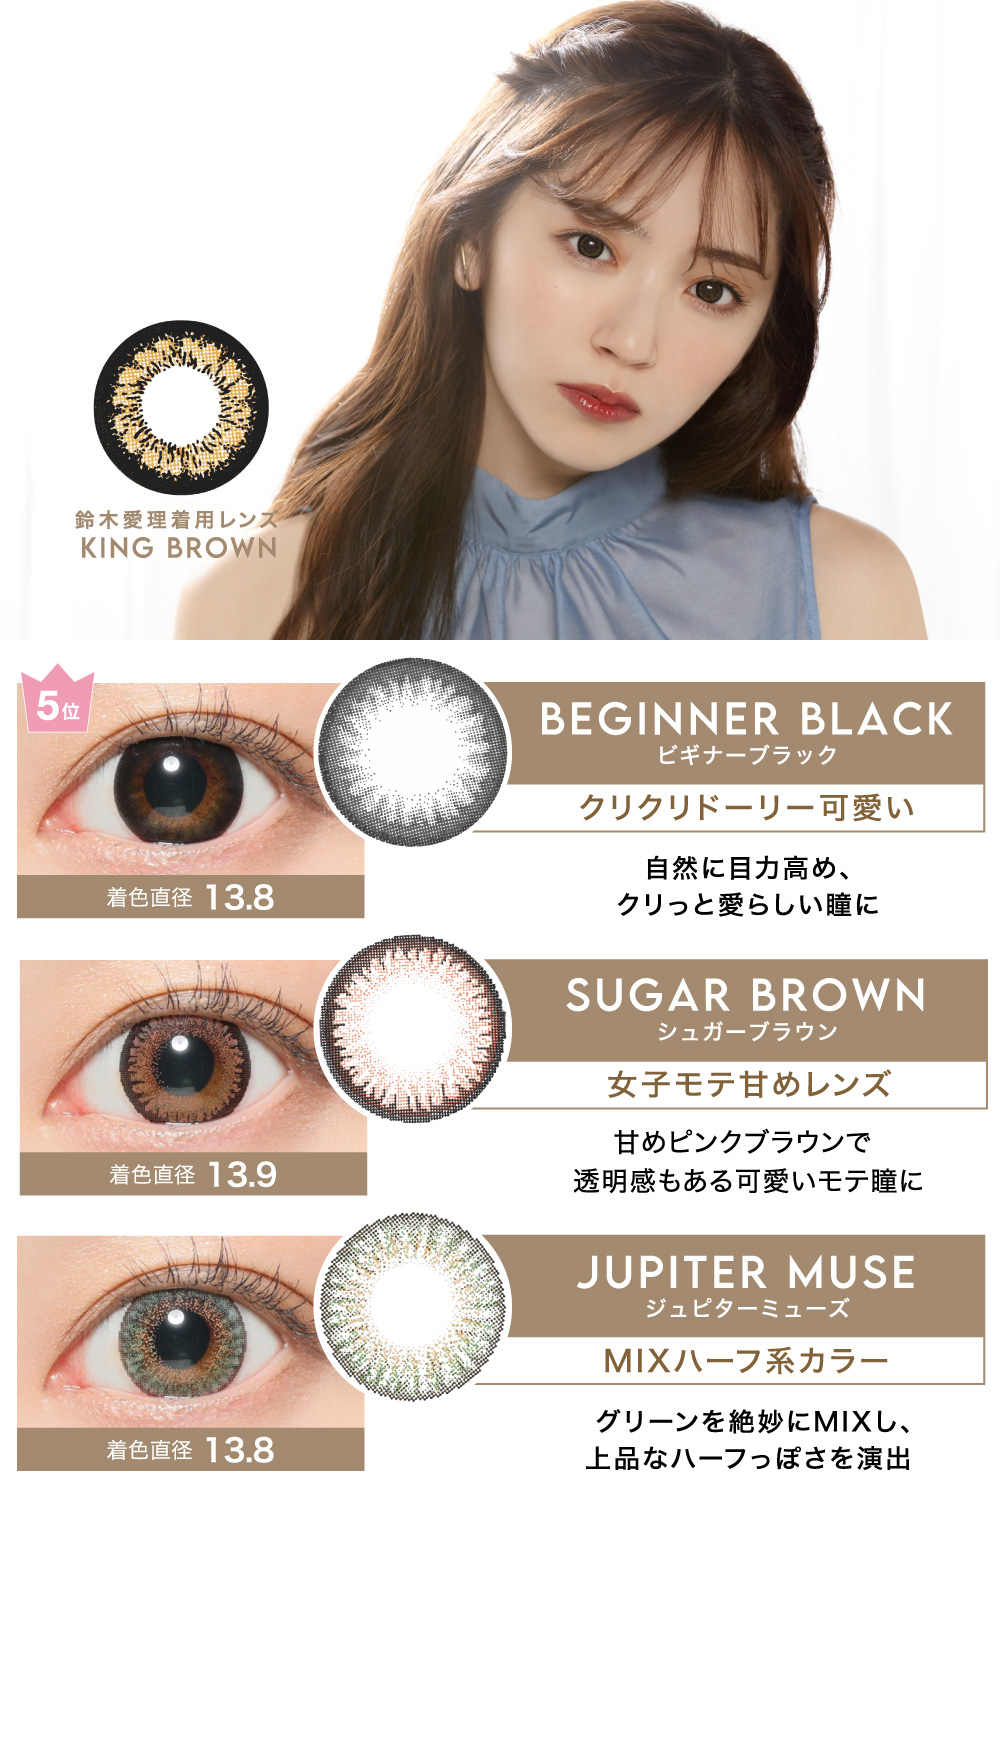 BEGINNER BLACK / SUGAR BROWN / JUPITER MUSE